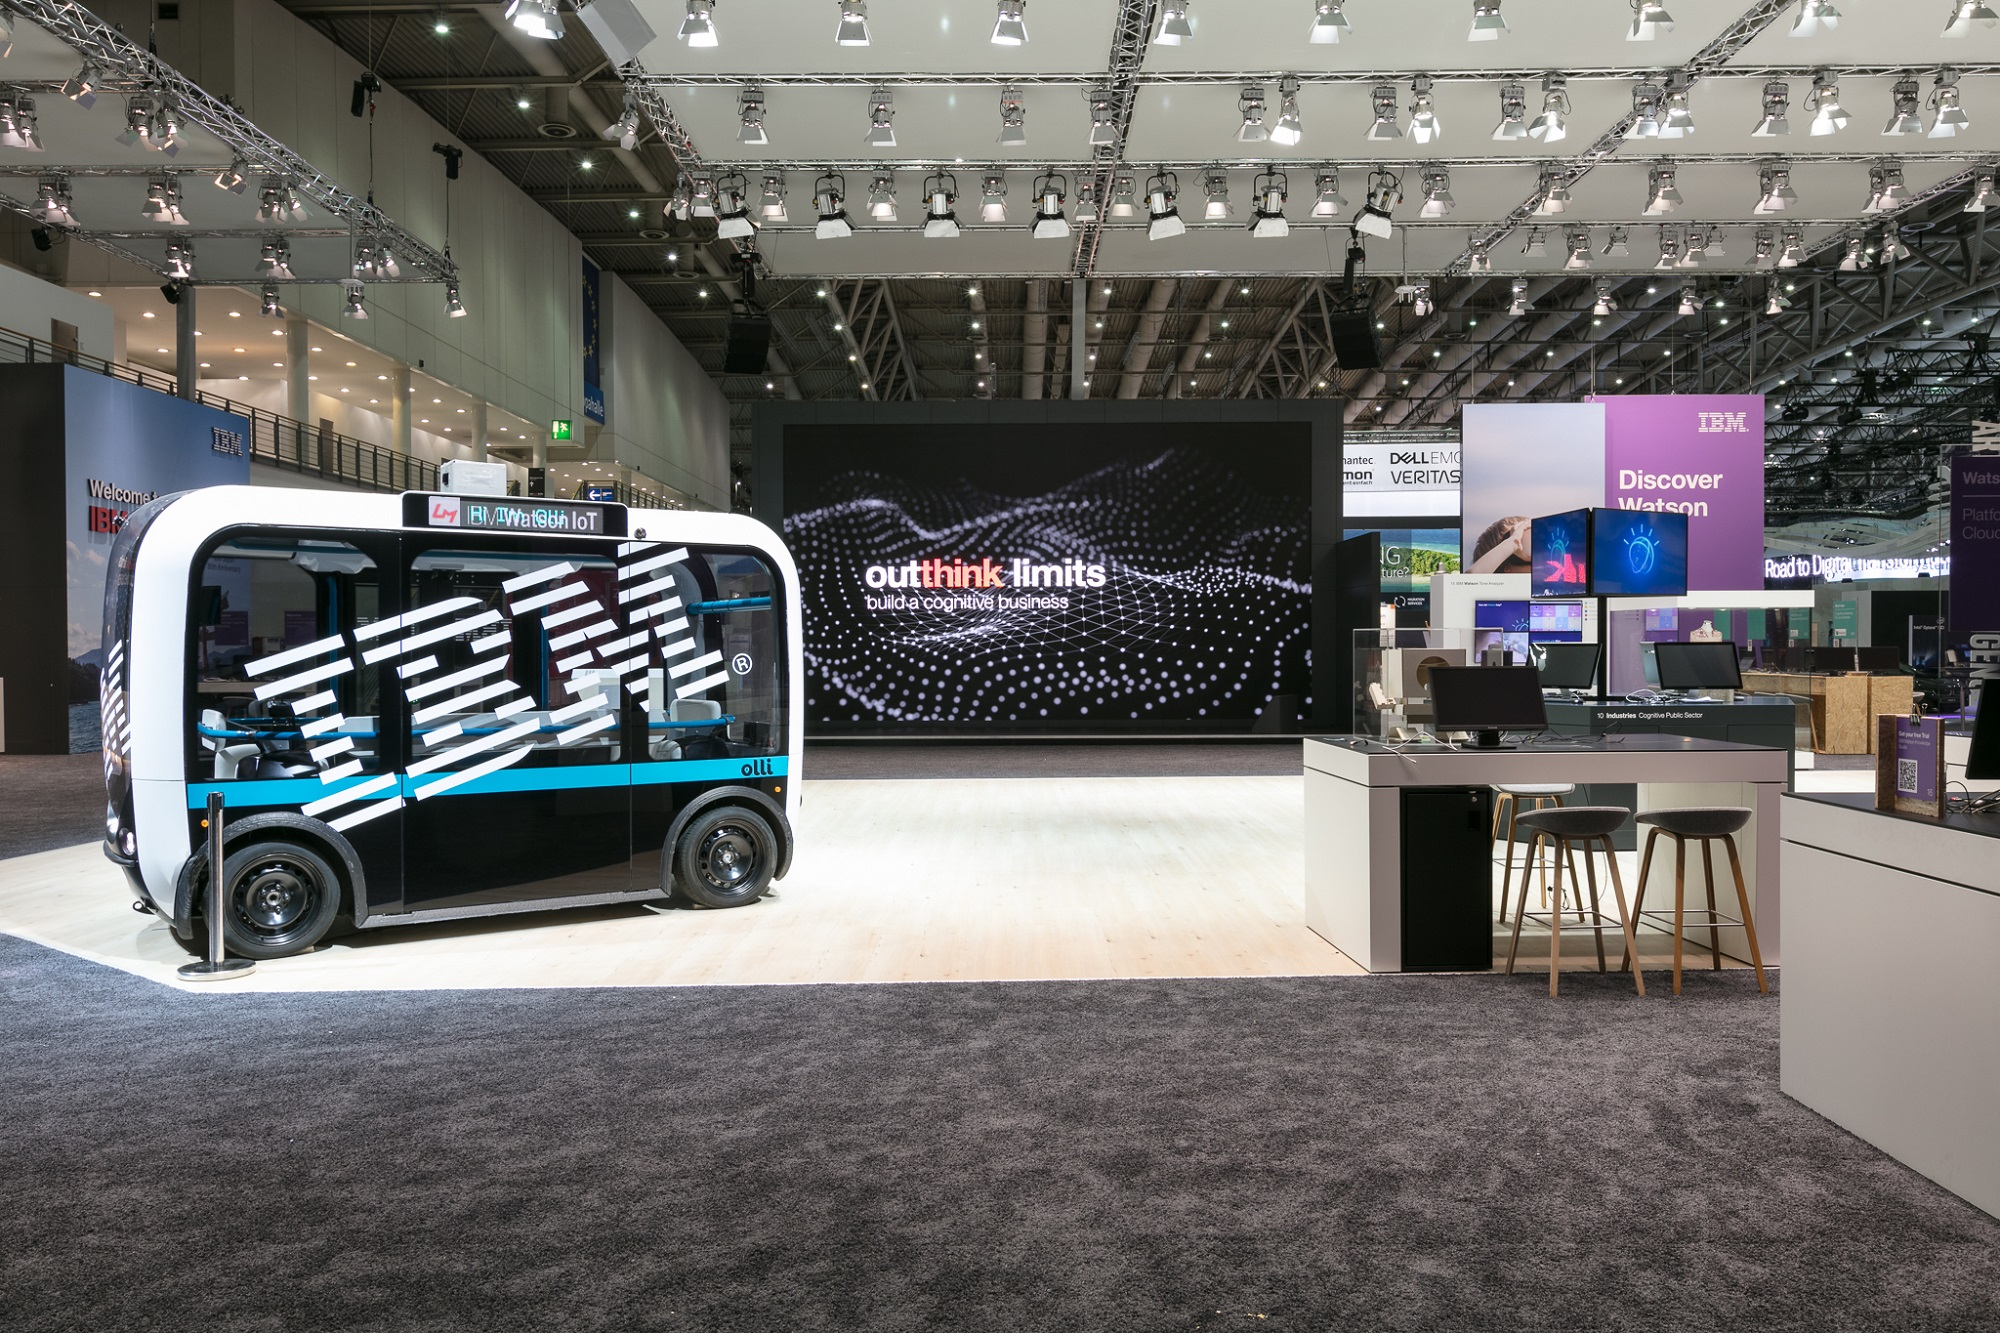 IBM-CeBIT-2017-Architektur-7732.jpg